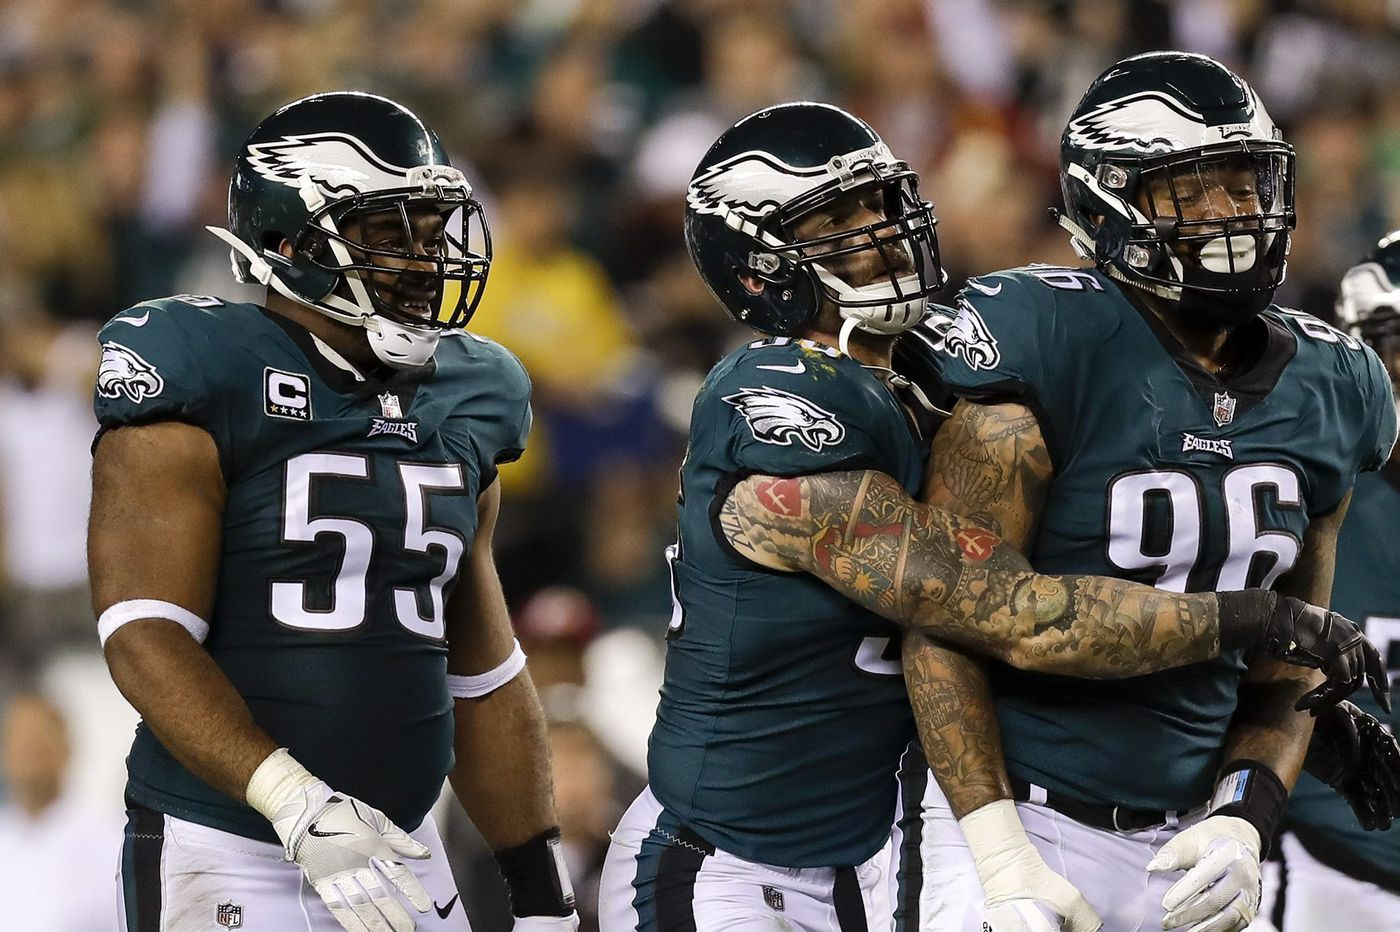 Did the Eagles' offseason additions improve their defensive line?